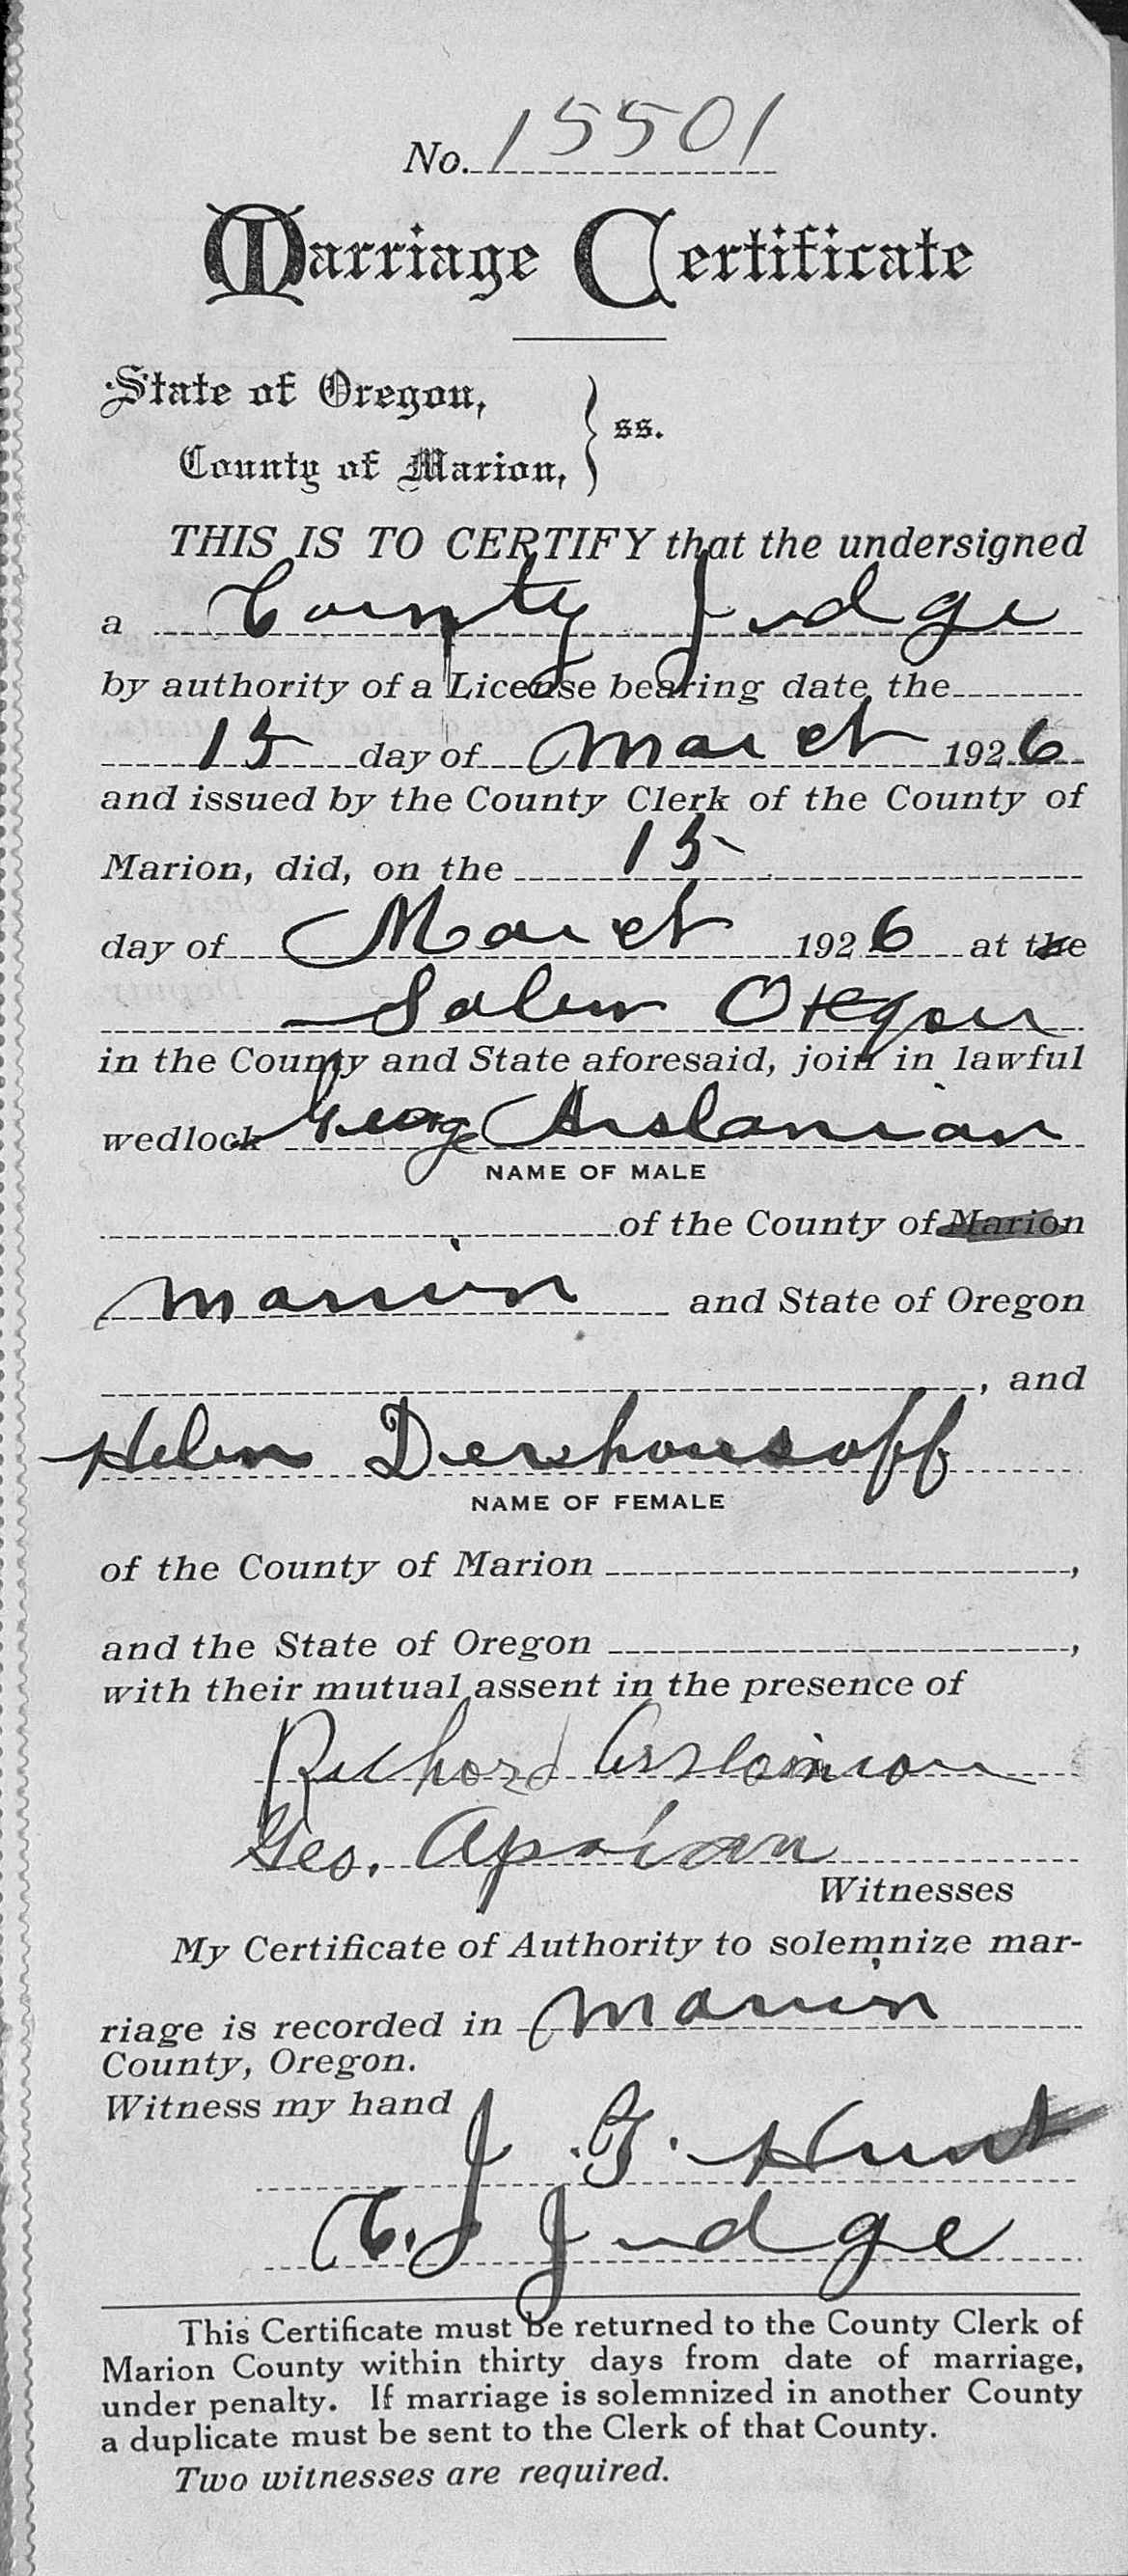 Illinois marion county salem - Marriage Record Of Kevork George Arslanian 212 To Helen Derhousoff 15 March 1926 Salem Marion County Oregon